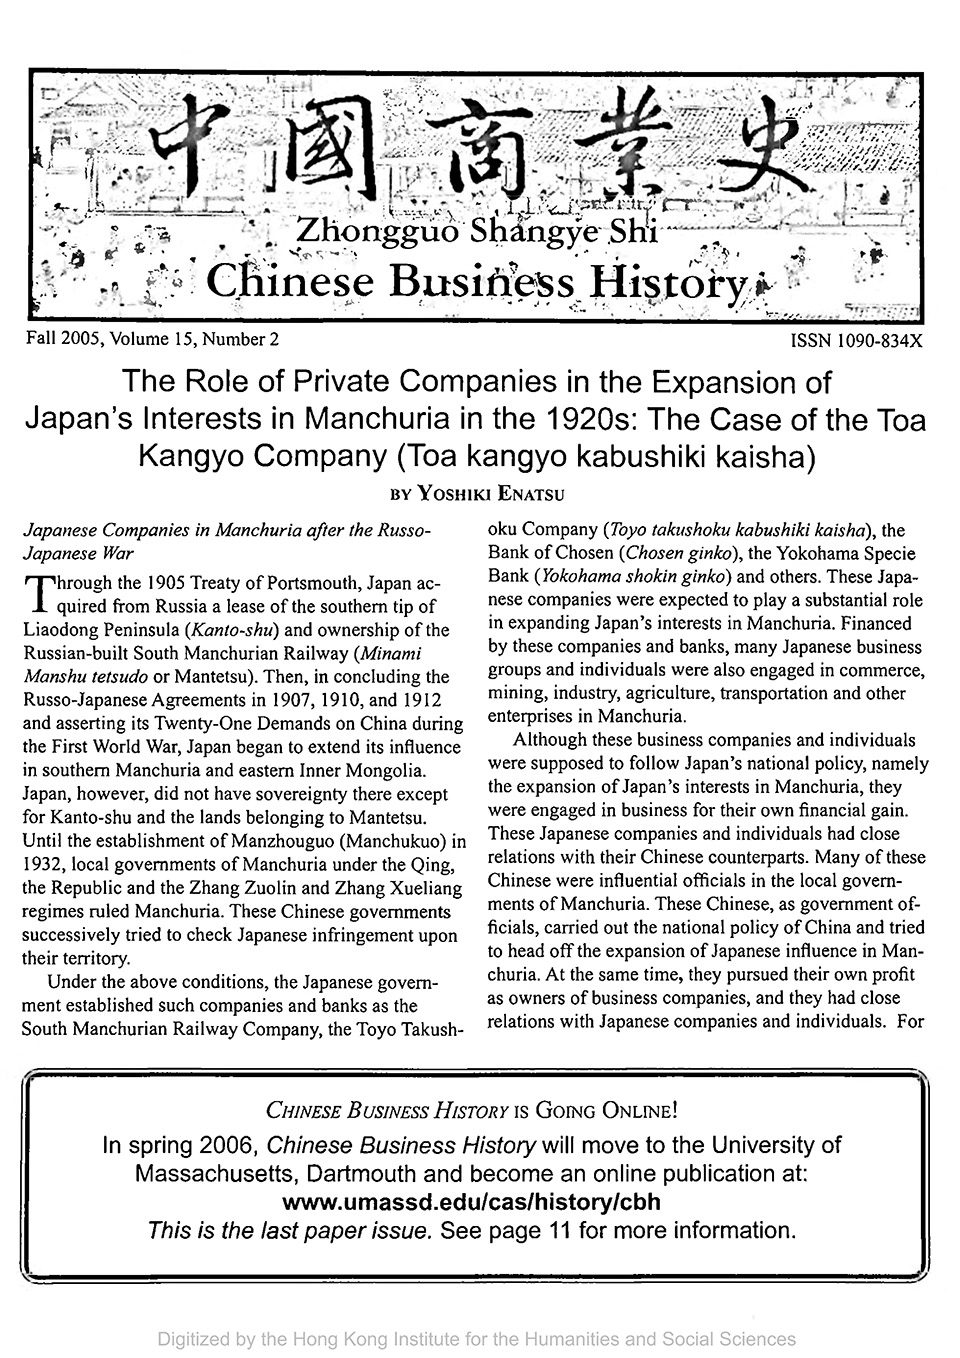 Cover of Chinese Business History Journal Volume 15, Number 2